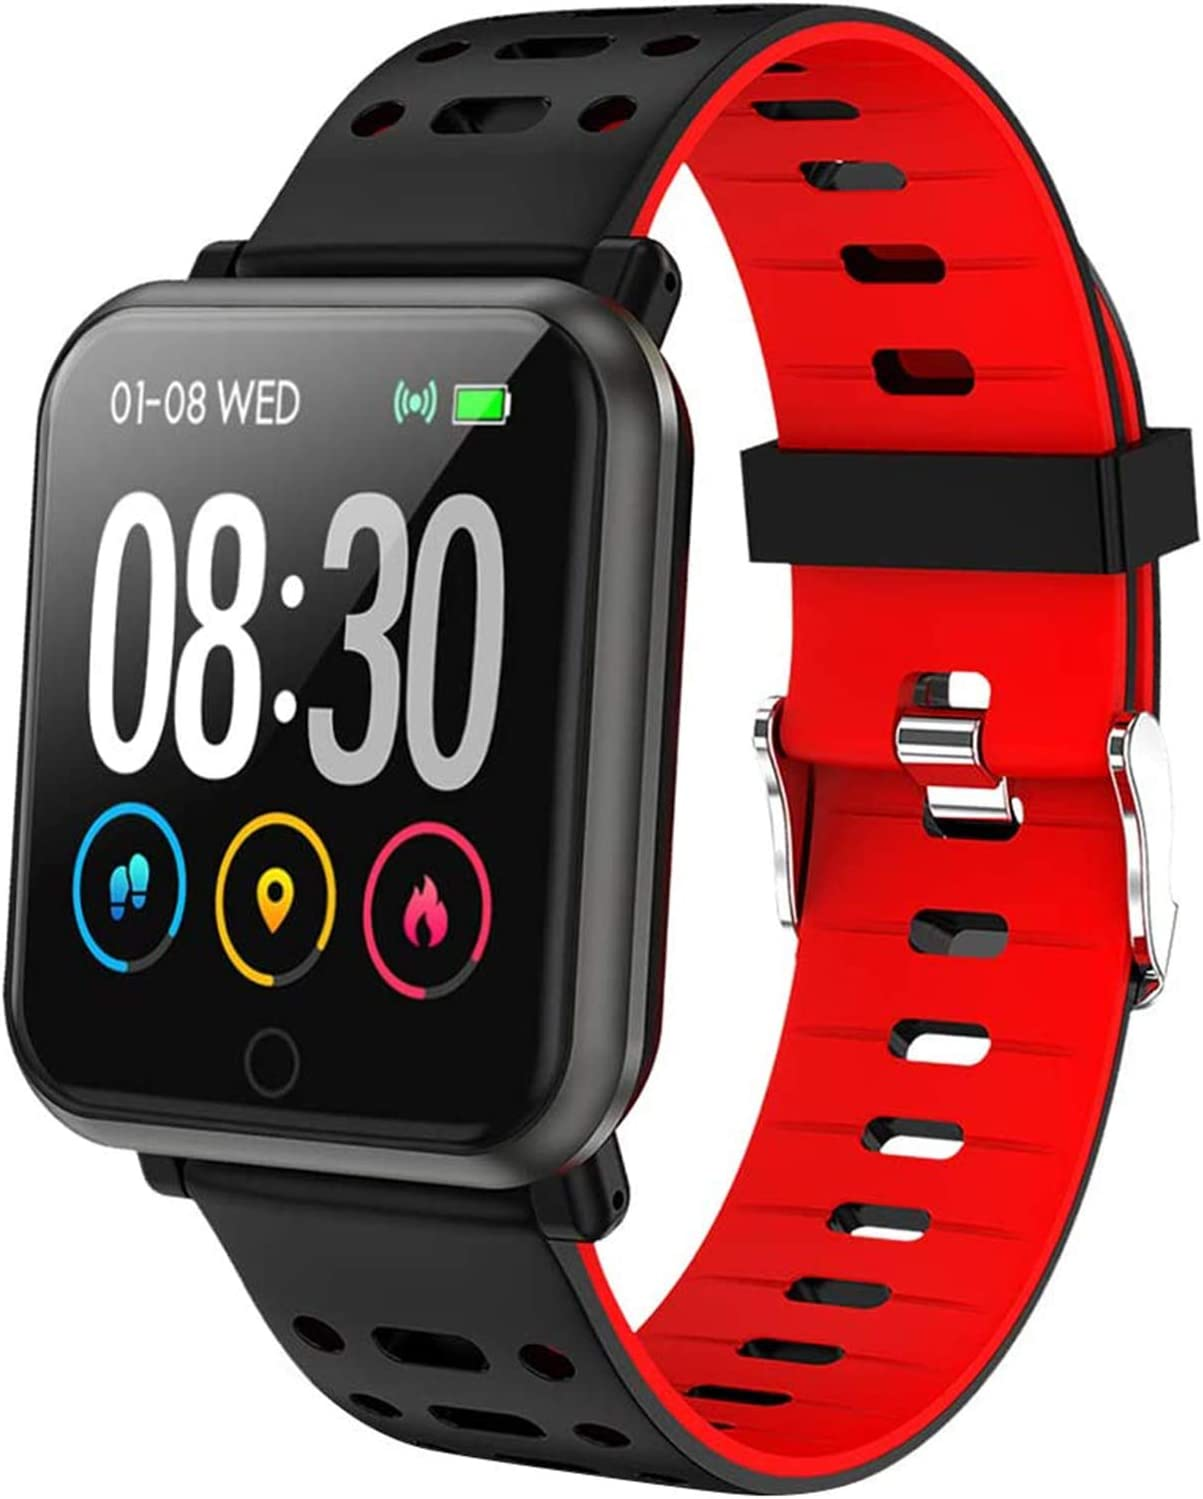 LEKOO Fitness Tracker Smart Max 48% 25% OFF OFF Watch with Fit Heart Tr Monitor Rate